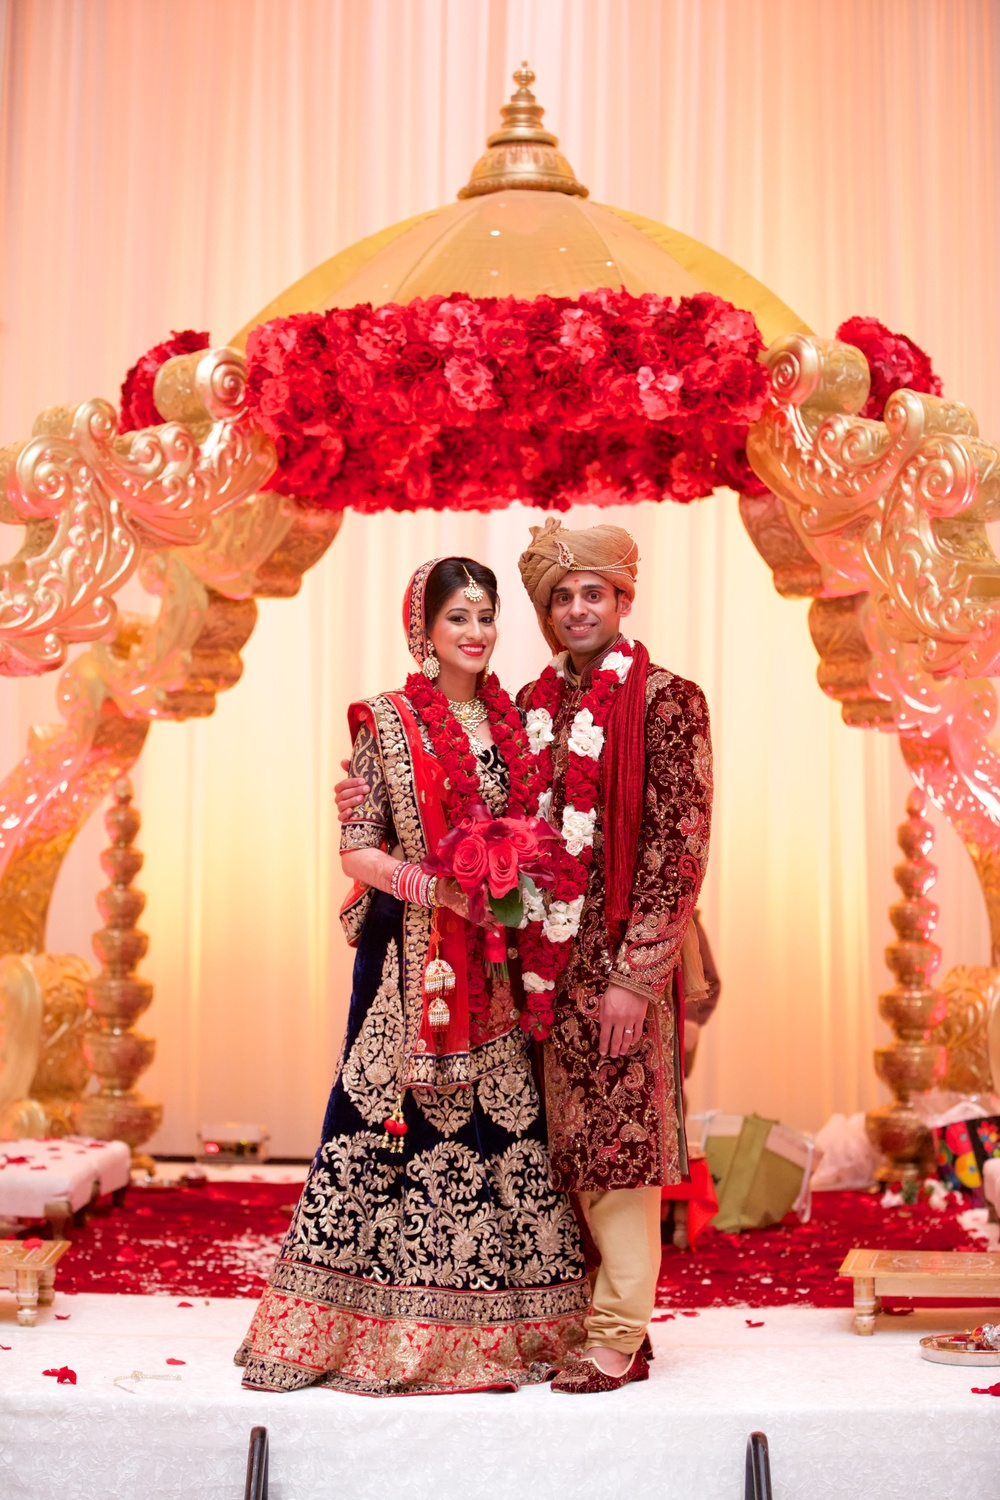 Le Cape Weddings - Indian Wedding - Day 4 - Megan and Karthik Ceremony  85.jpg